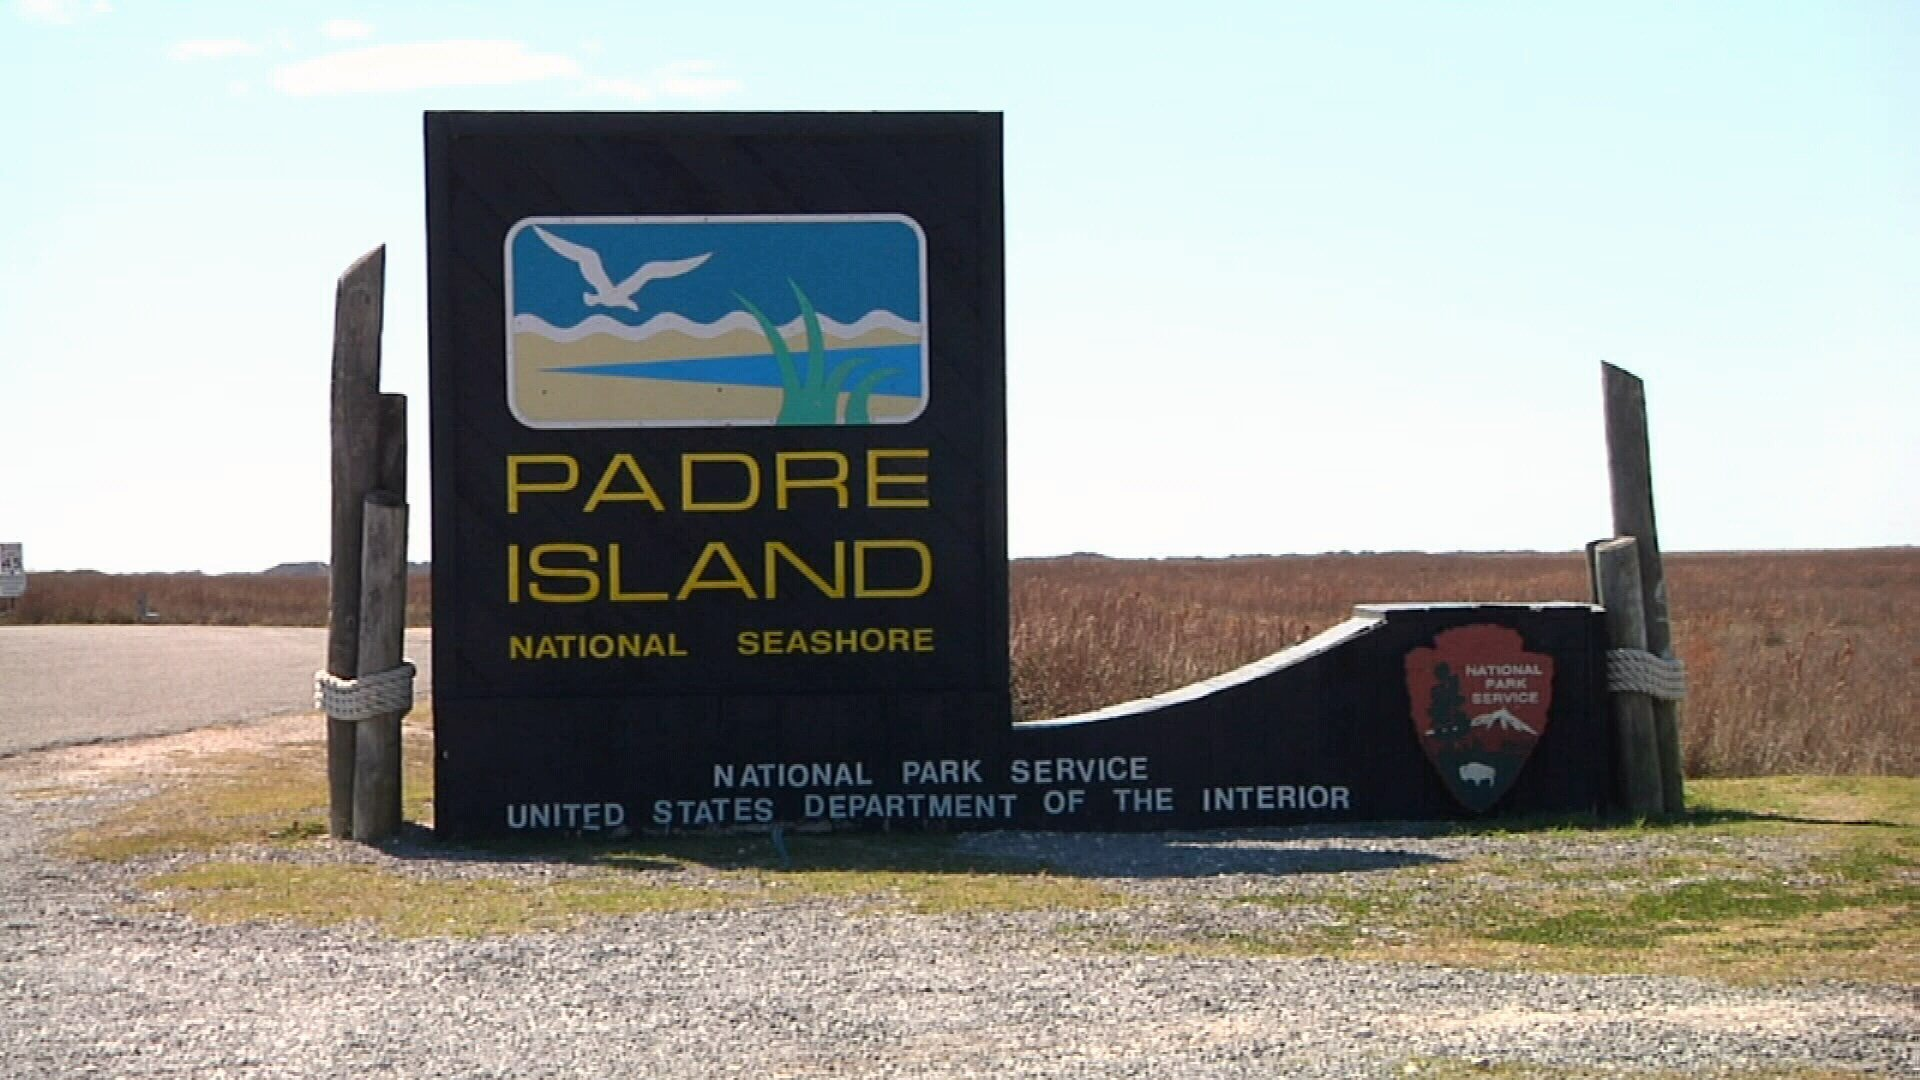 Padre Island National Seashore is proposing an increase in park fees.